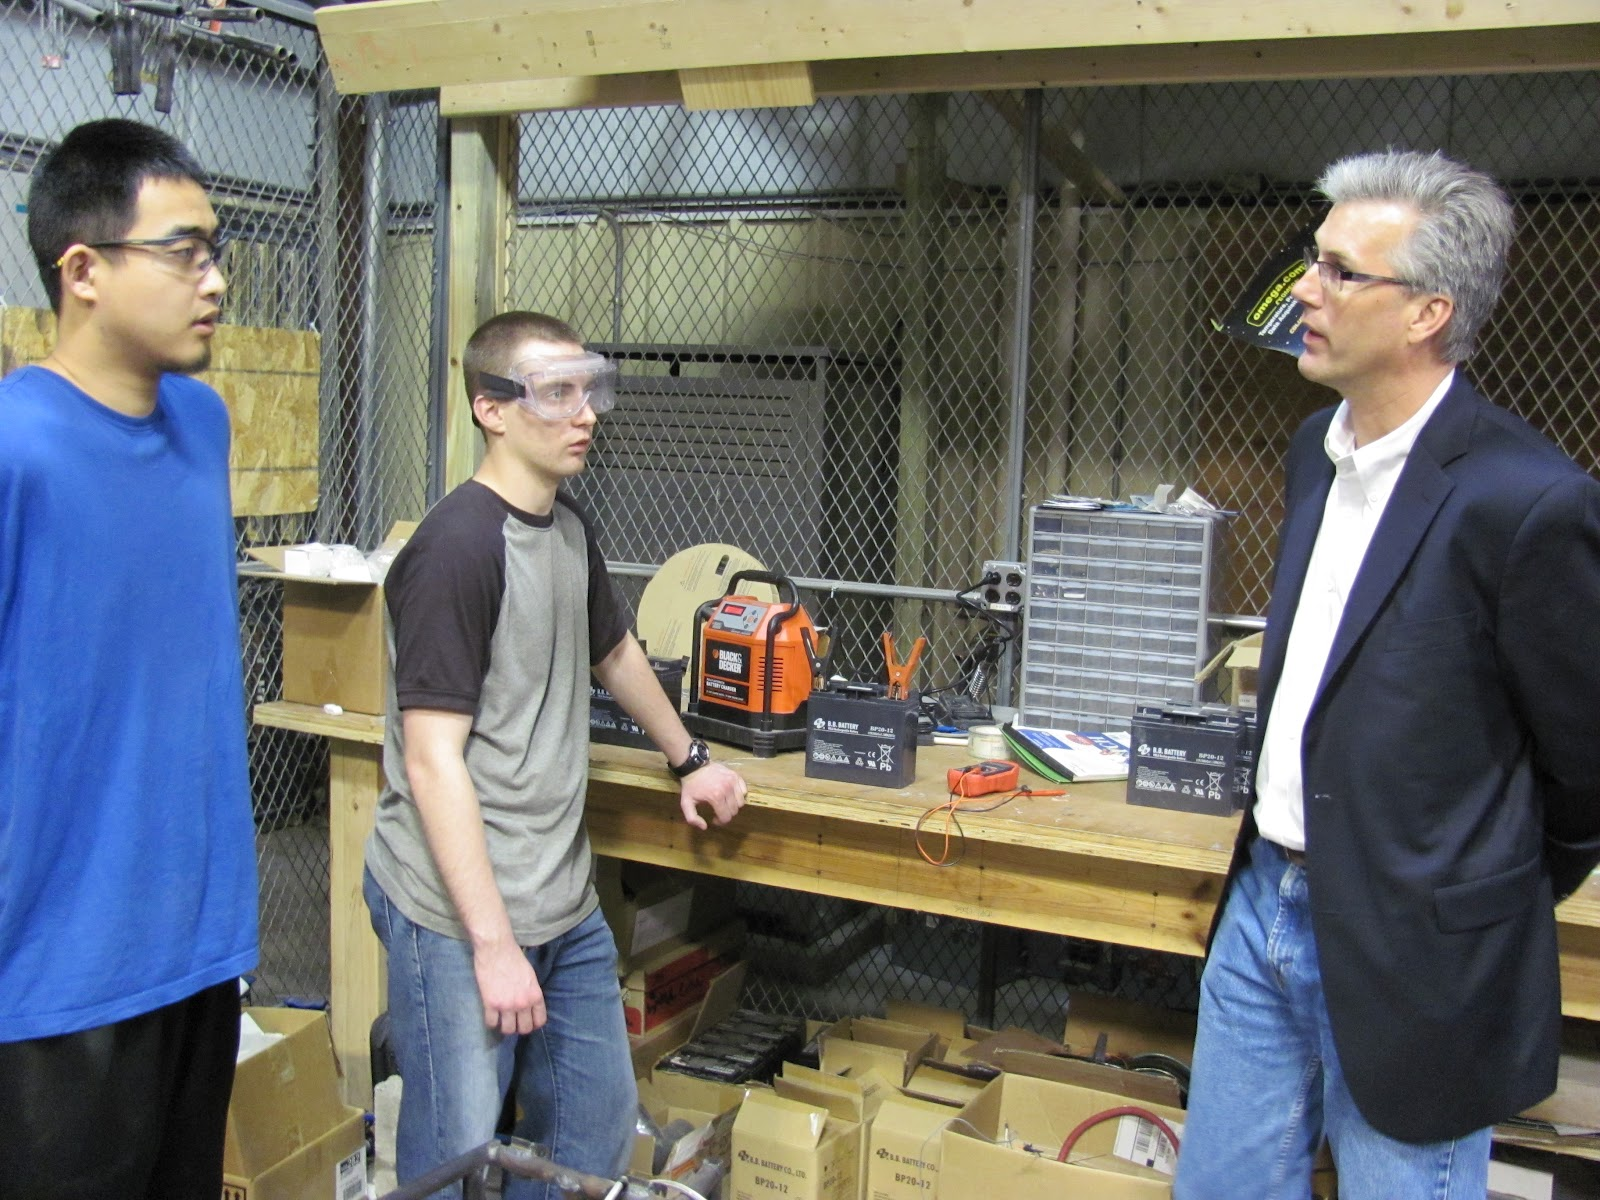 Visit to Lansing Electric Motors and our meeting with John Nathan of Lear